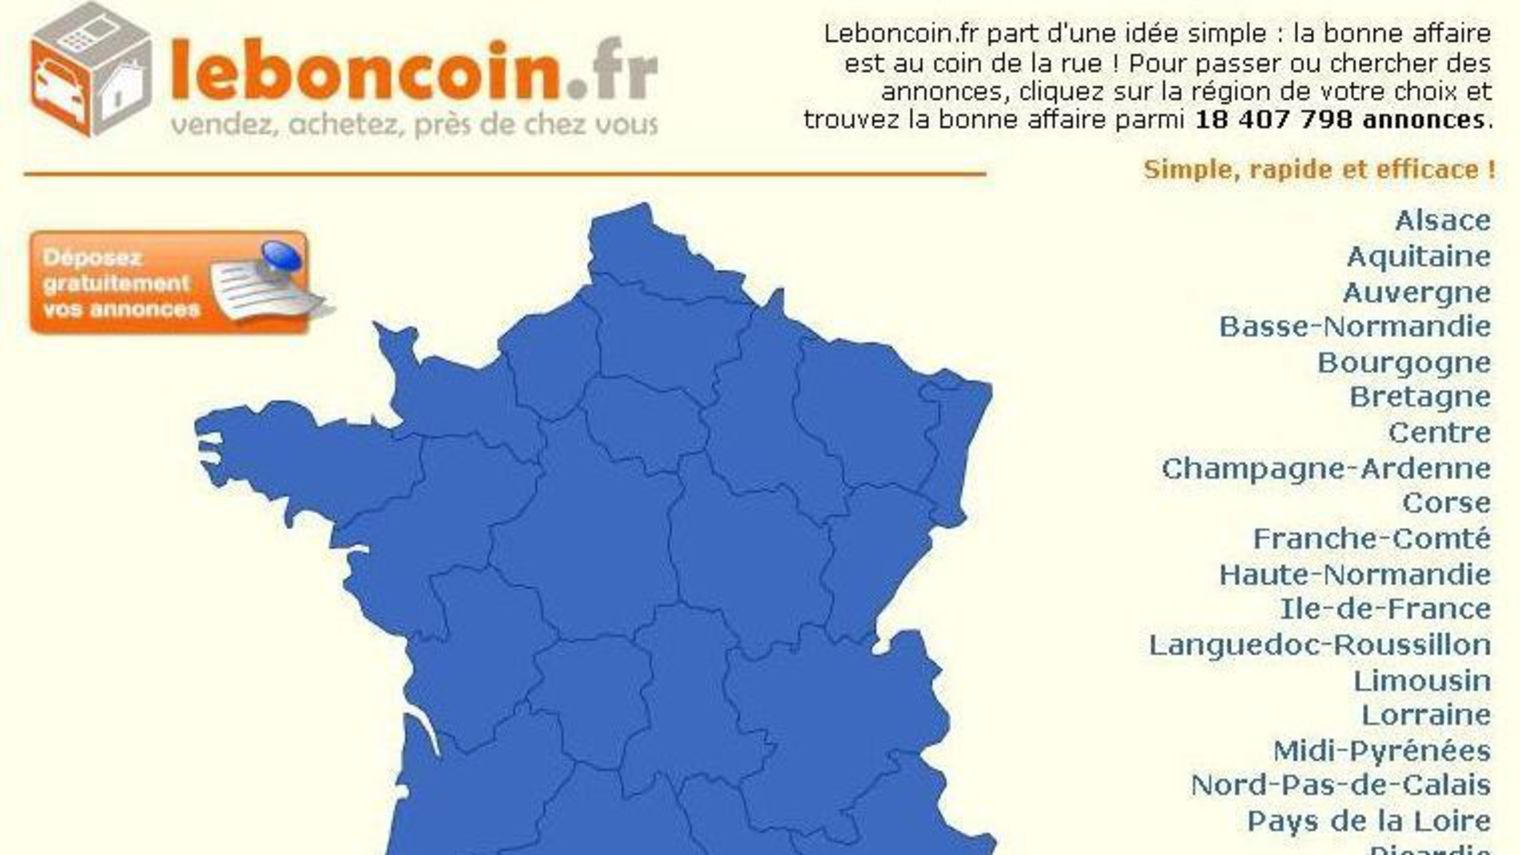 Le bon coin ameublement 13 for Bon coin 30 ameublement